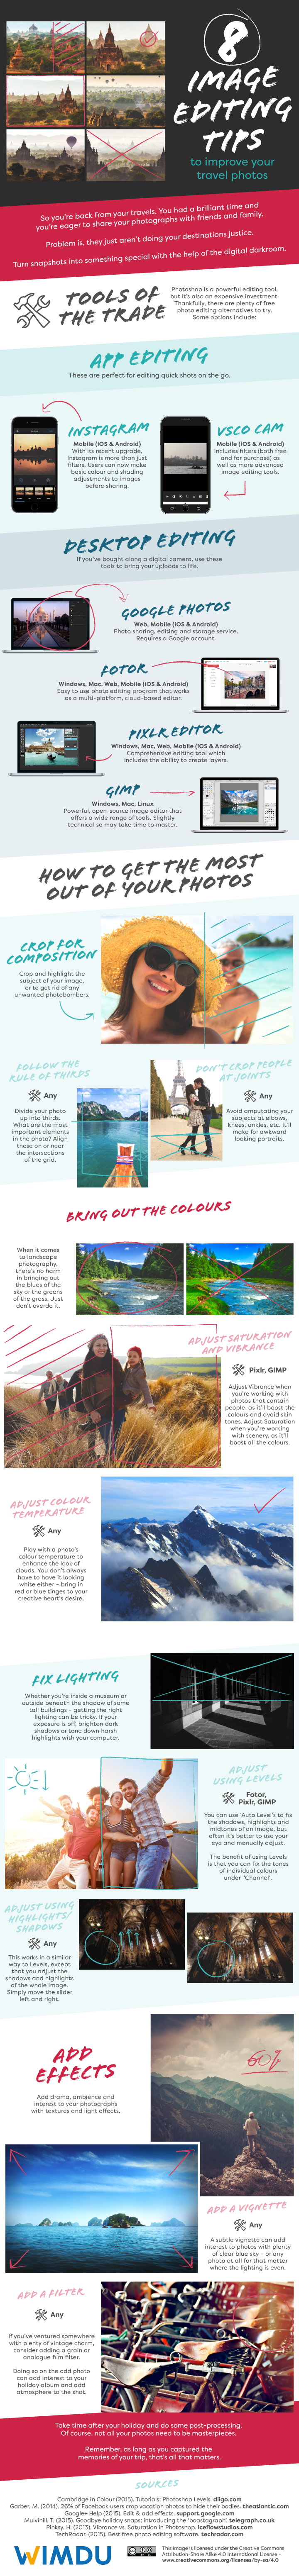 8 Image Editing Tips To Improve Your Travel Photos.Jpg